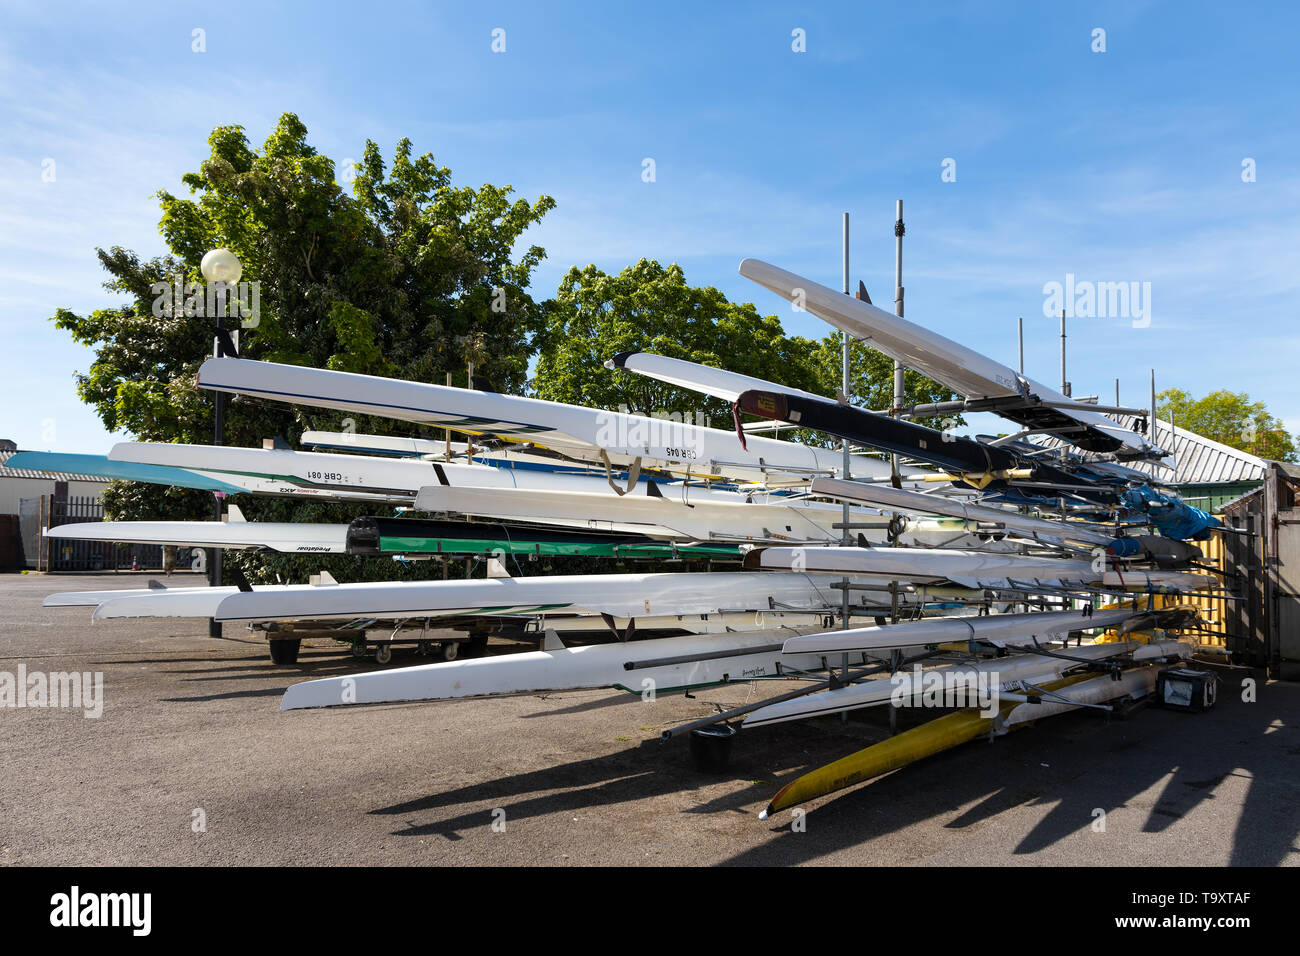 BRISTOL, UK - MAY 14 : Lots of skulling boats by the River Avon in Bristol on May 14, 2019. - Stock Image